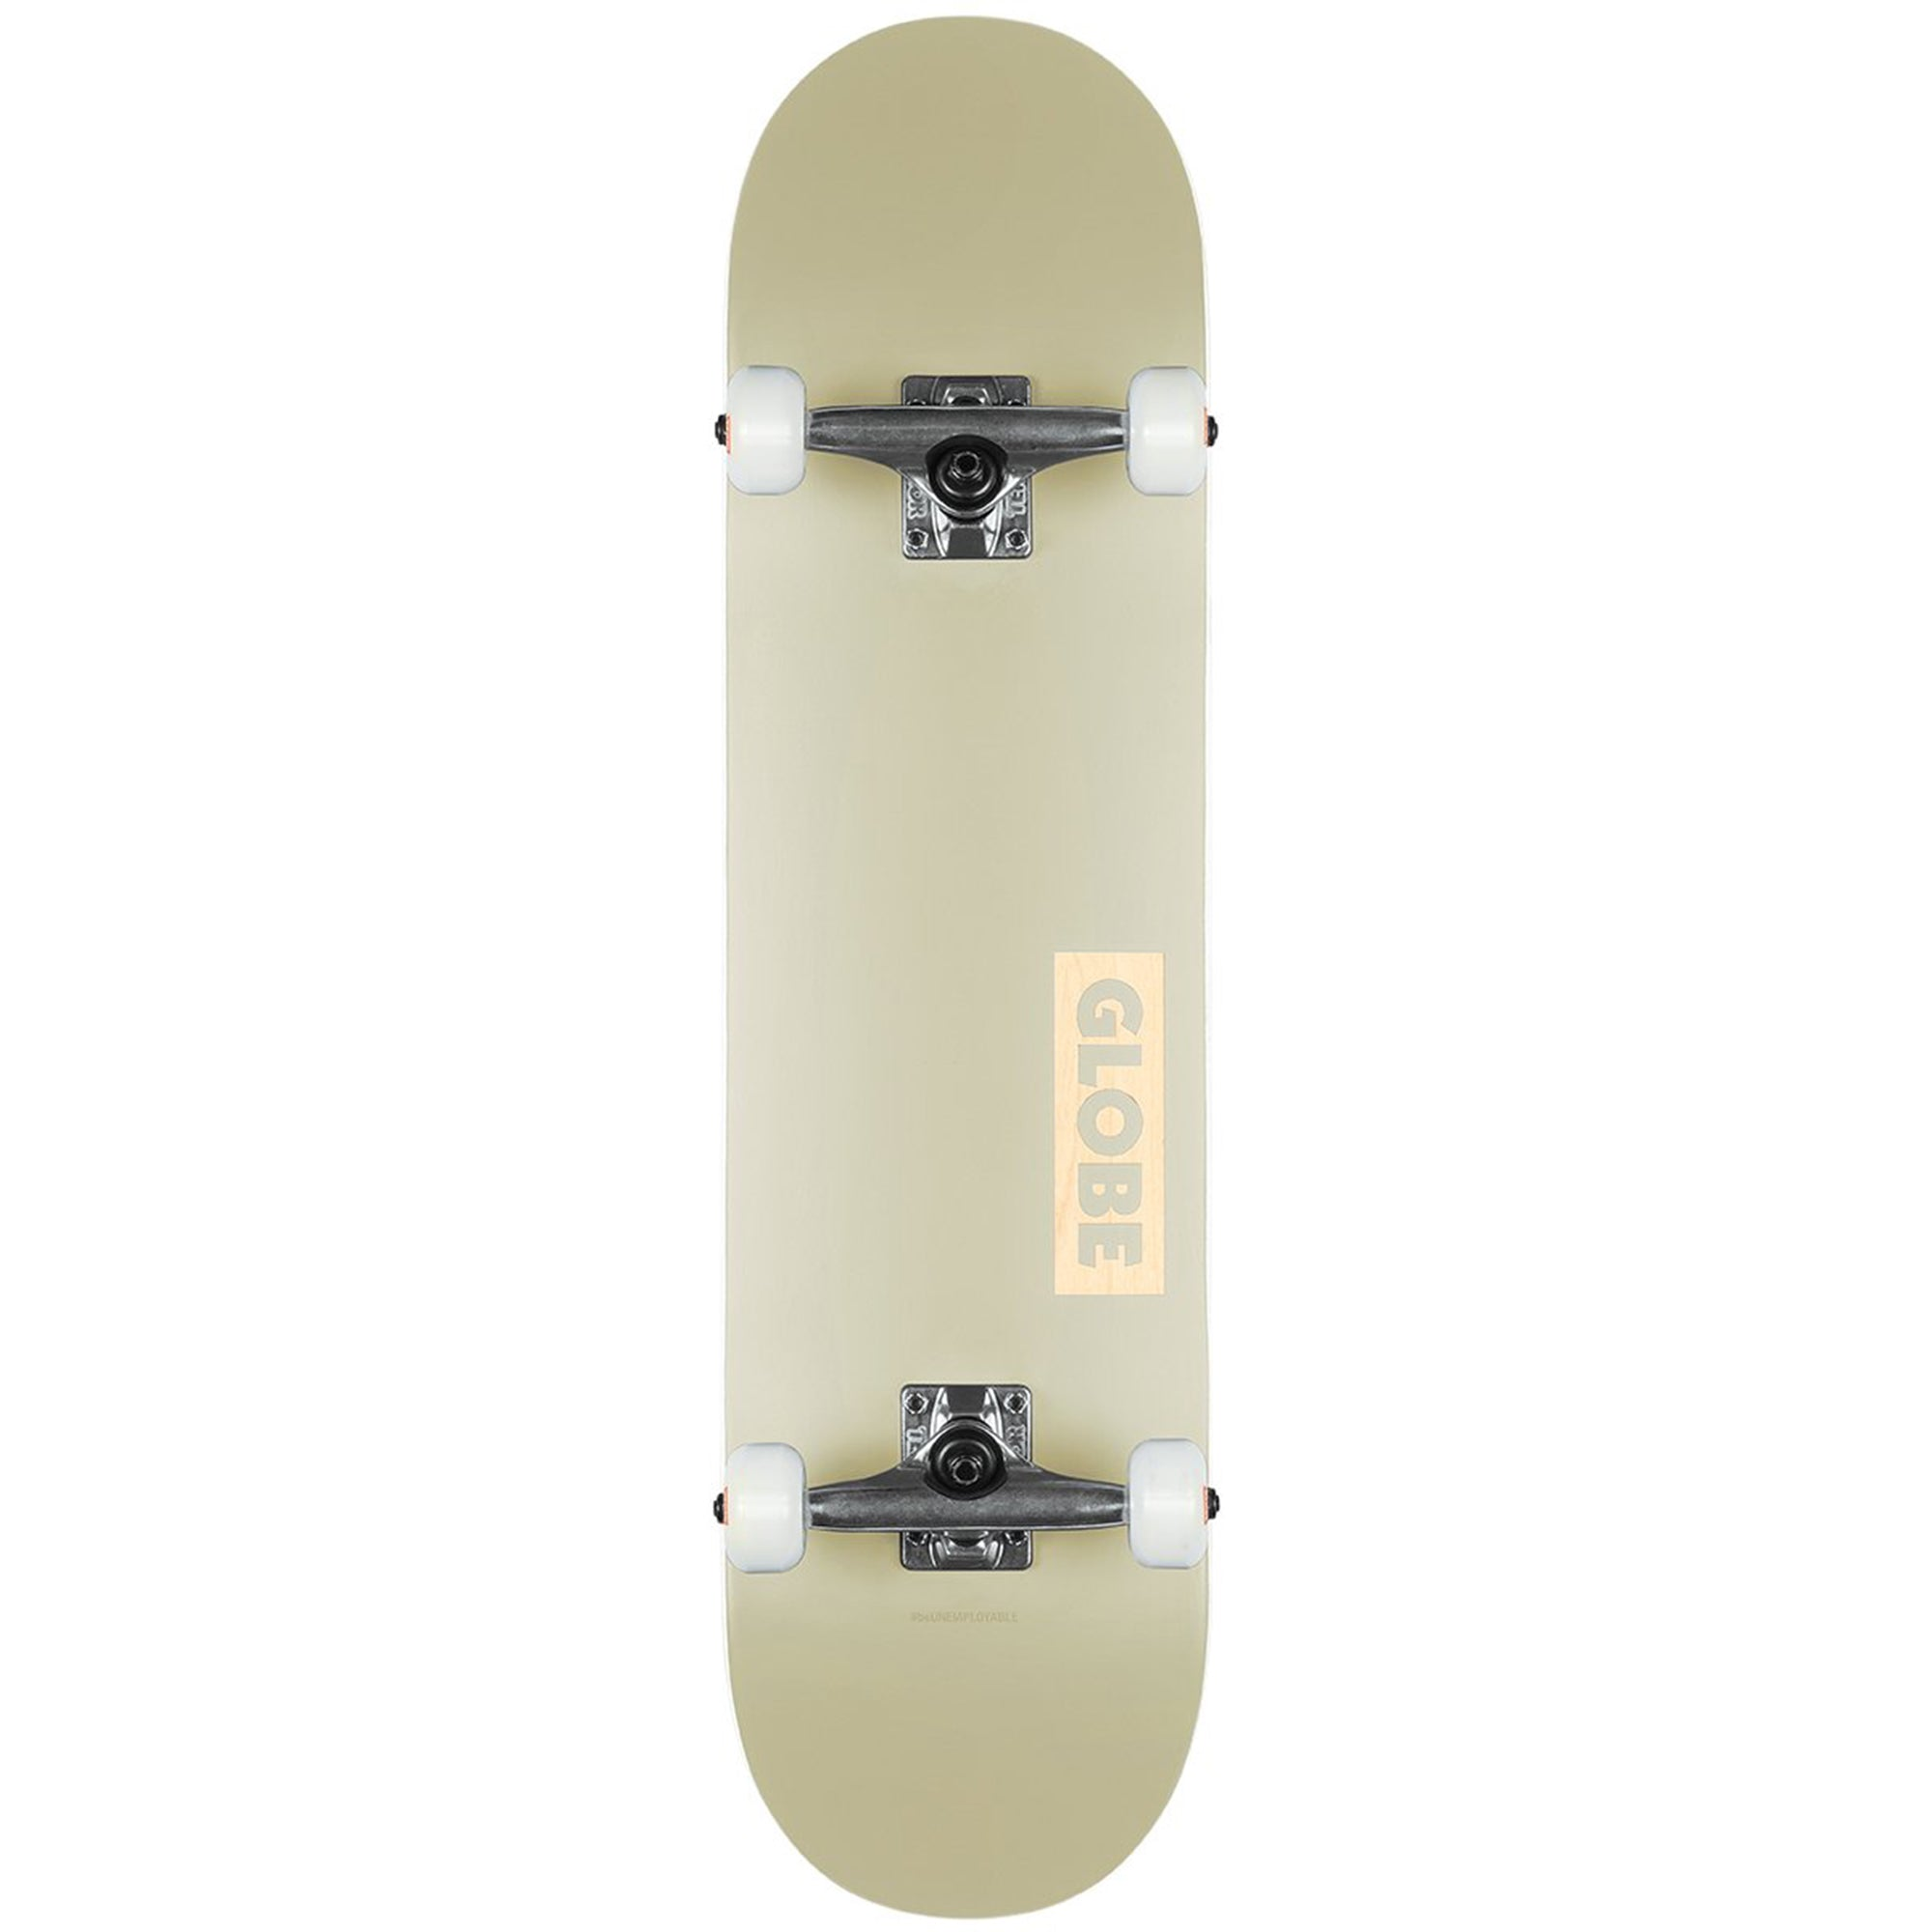 "Globe Goodstock Complete Skateboard 8.0"" - Off White"